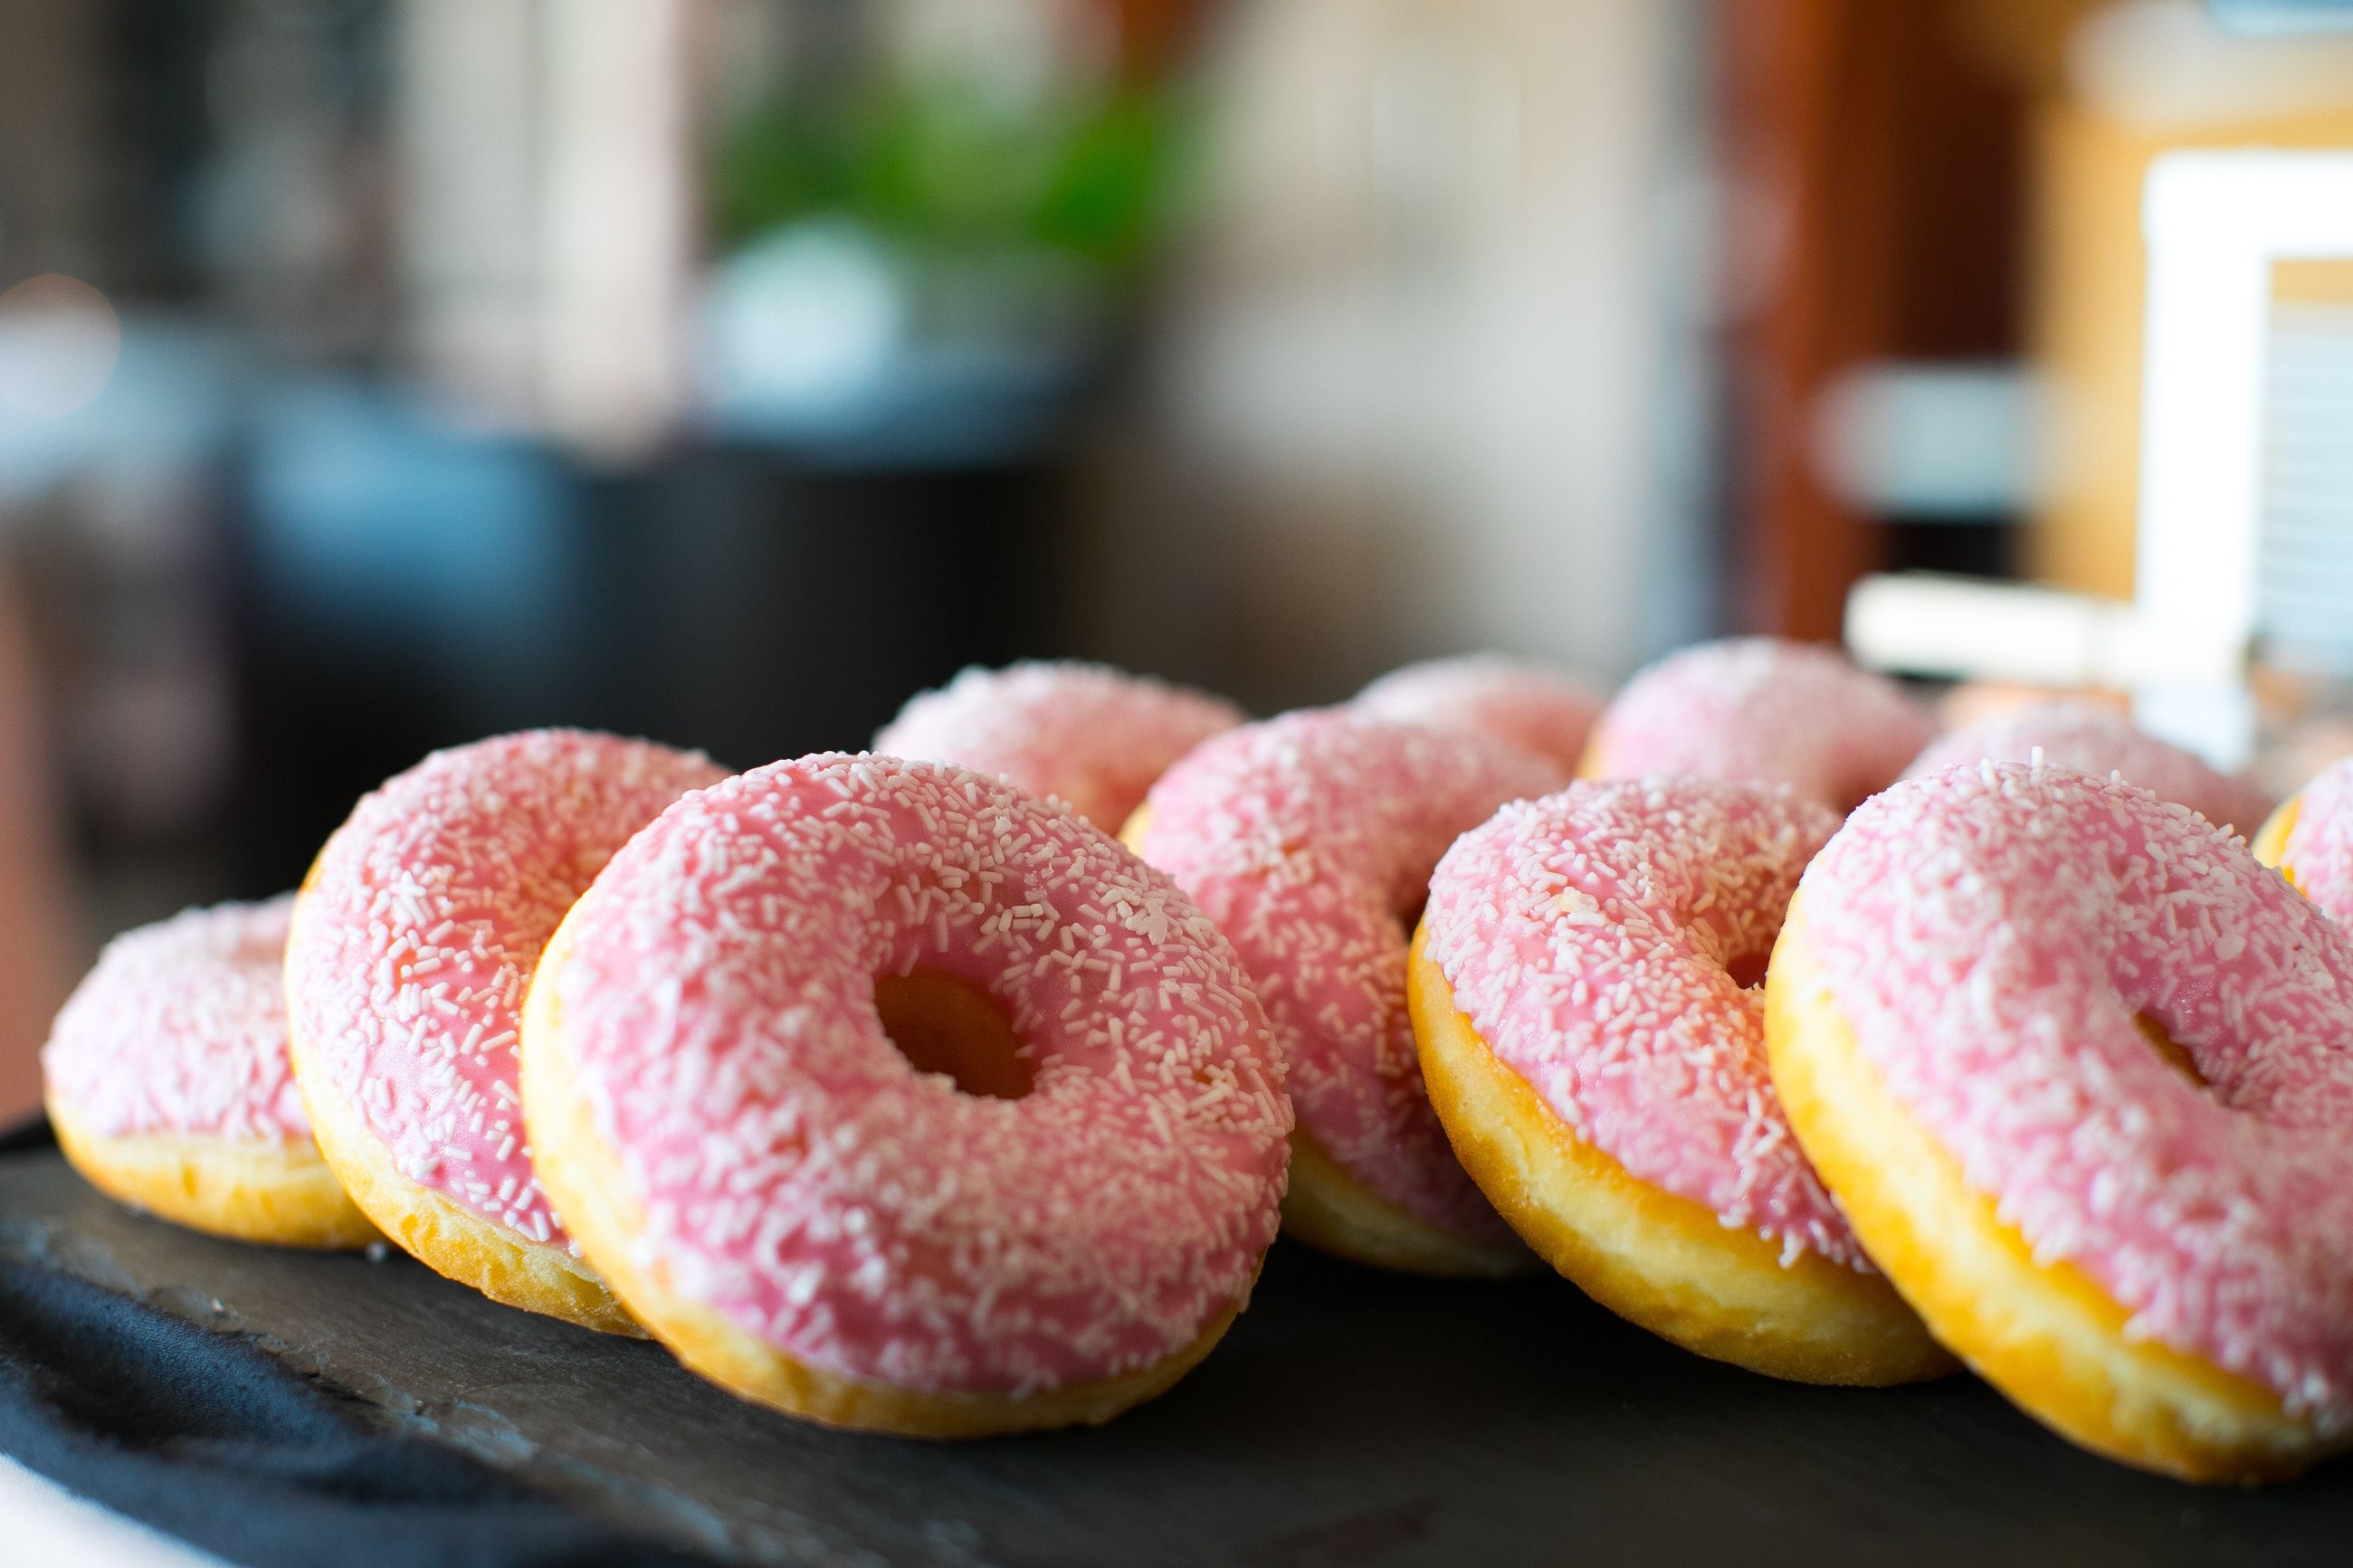 food, food and drink, freshness, sweet food, still life, close-up, no people, indulgence, focus on foreground, dessert, sweet, temptation, ready-to-eat, table, indoors, baked, unhealthy eating, donut, pink color, fruit, macaroon, tray, snack